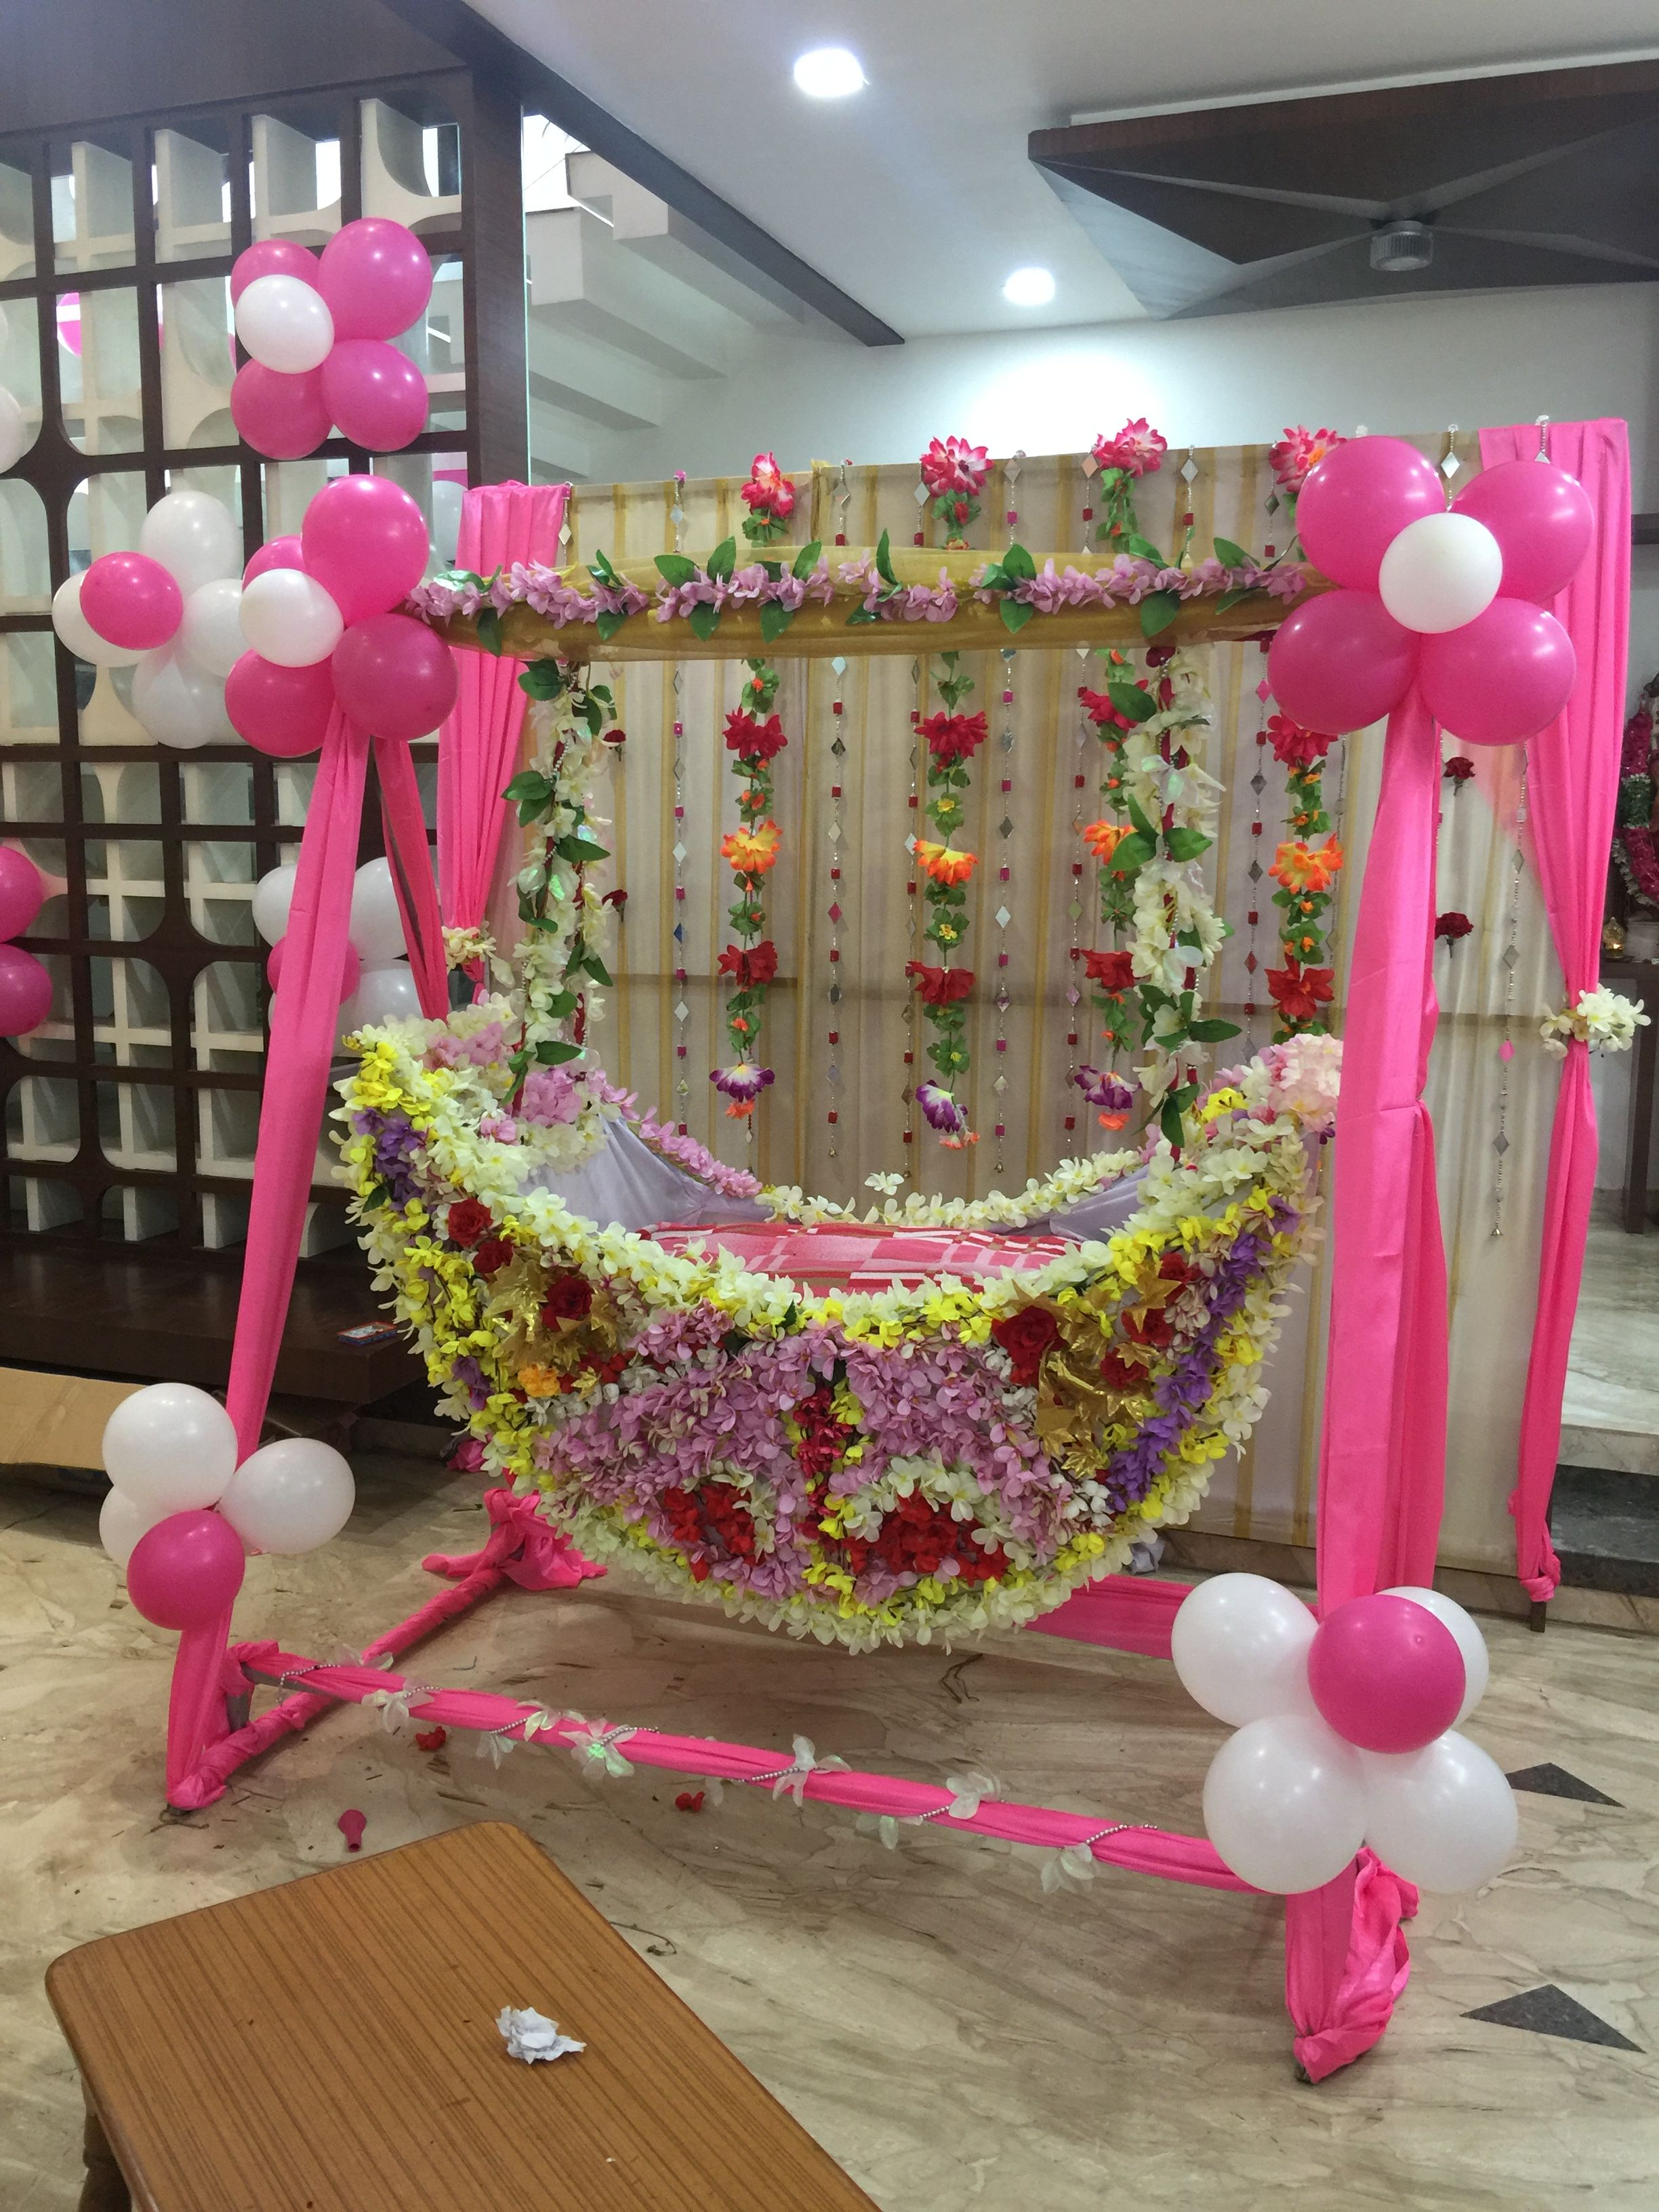 Cradle Cermony Decor In 2019 Cradle Ceremony Naming Ceremony